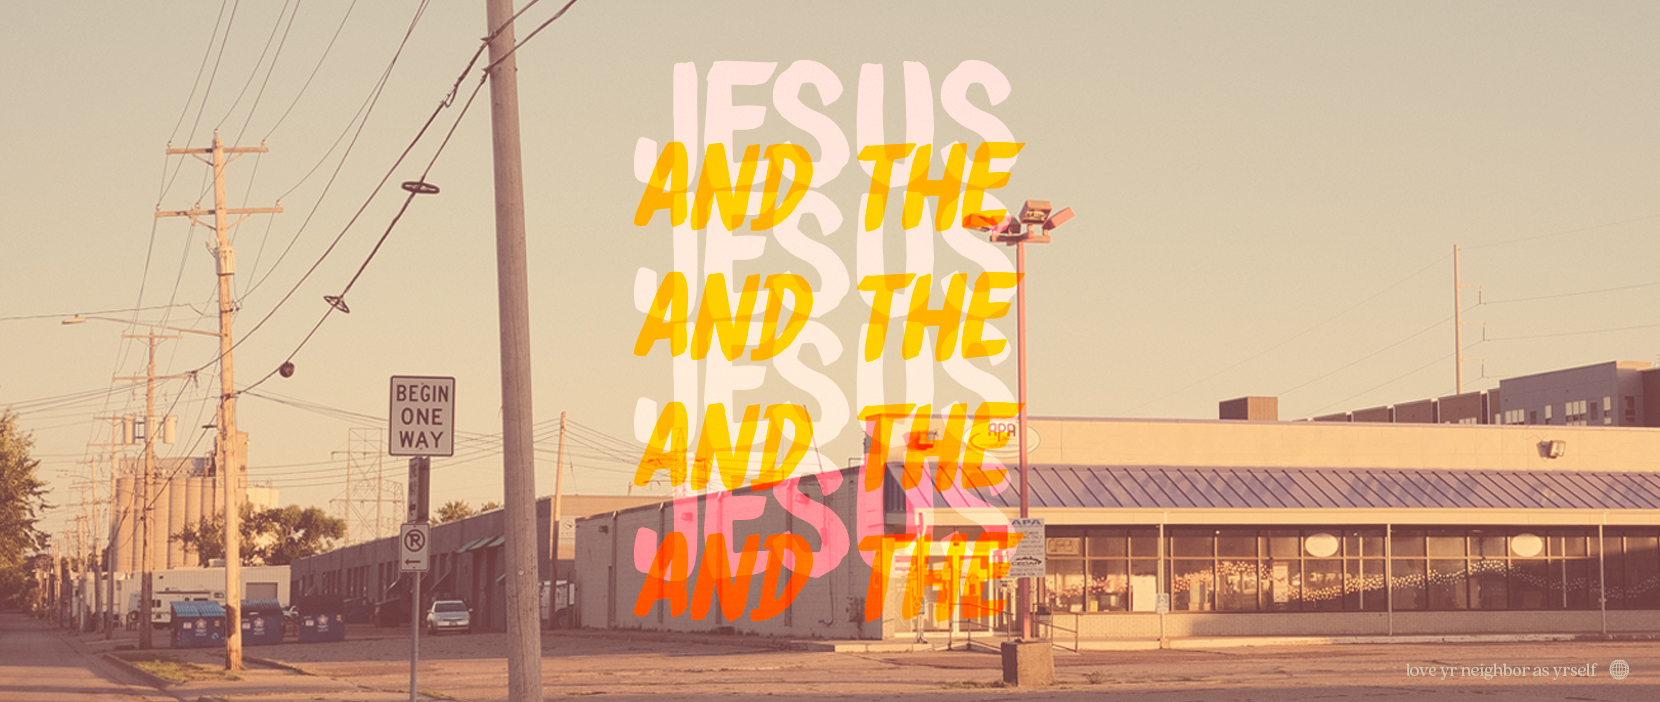 Main image for Jesus And The